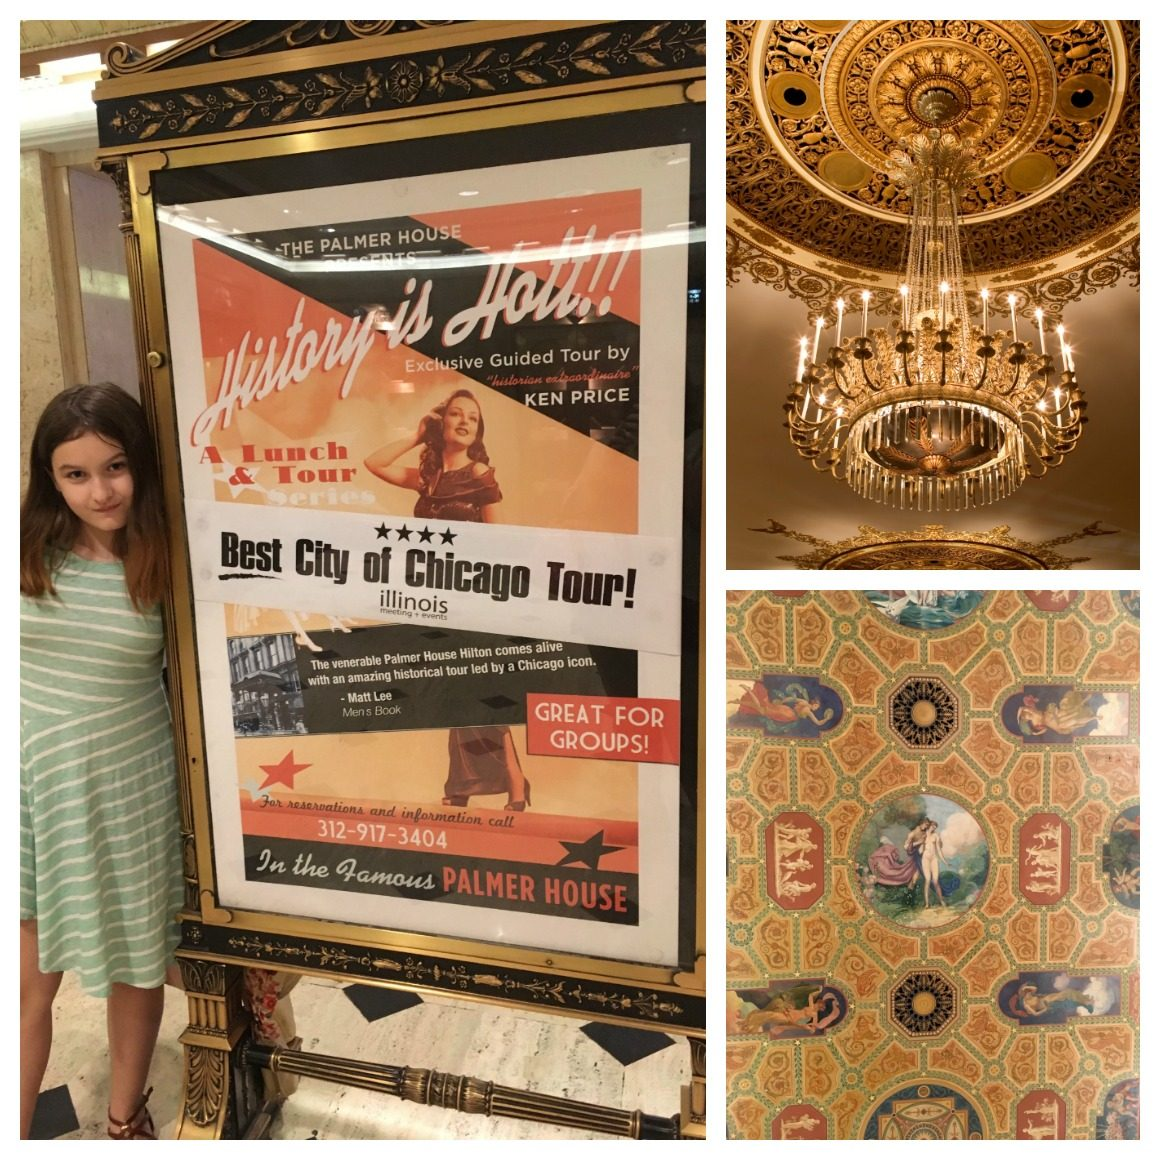 Family Hotel in Chicago - Well Traveled Kids